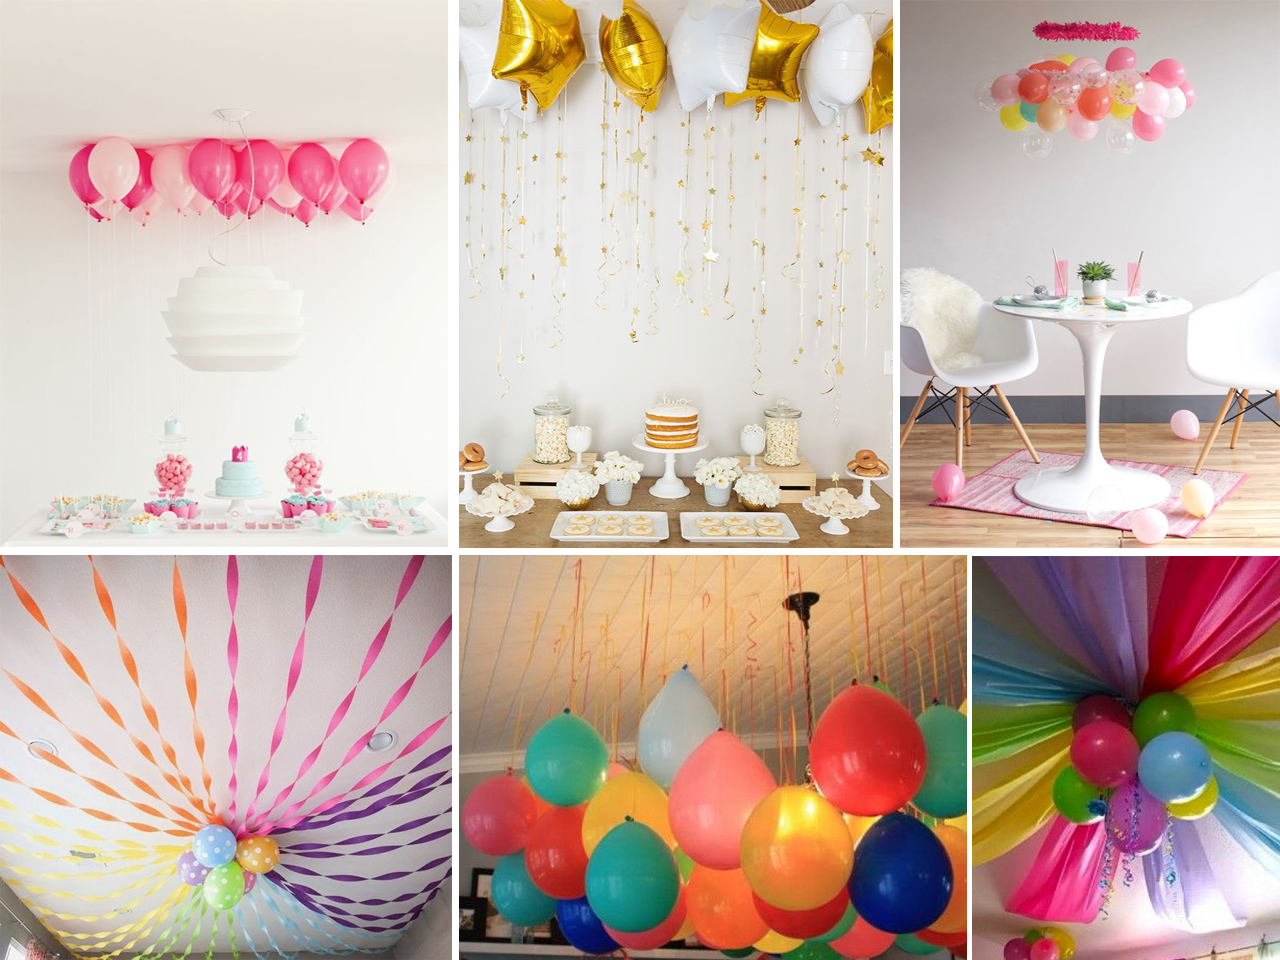 Descubre c mo decorar con globos con estas fant sticas ideas - Fotos pinterest ...